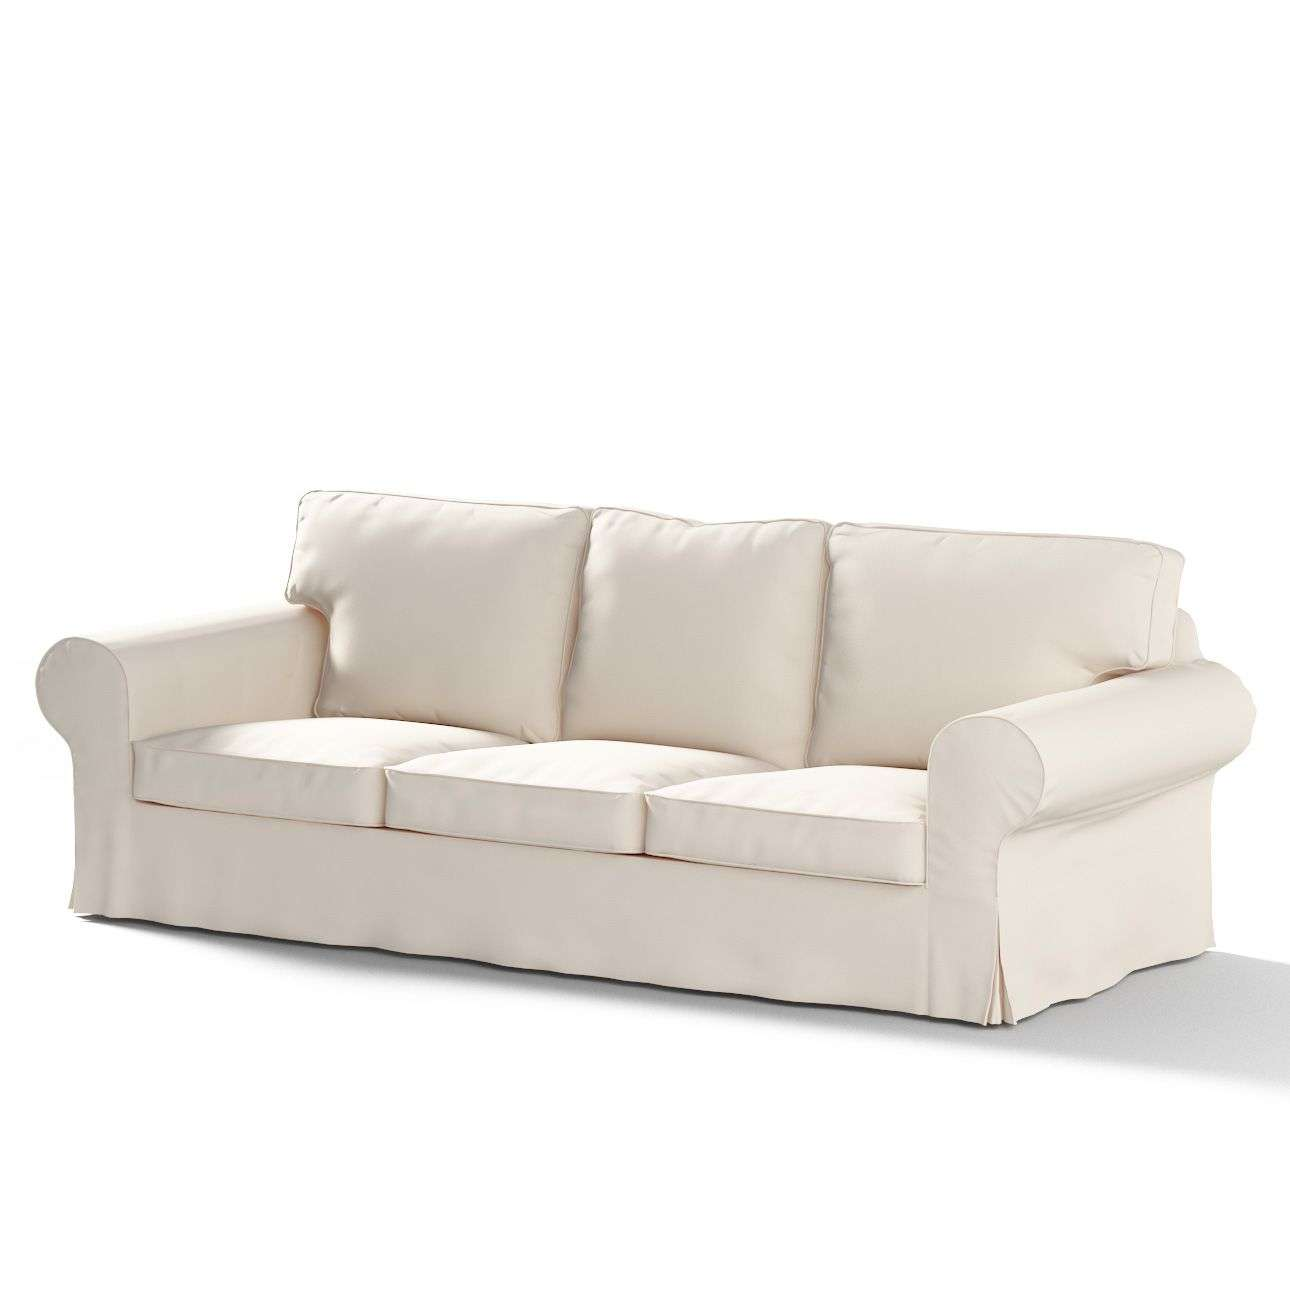 Ikea Ektorp Sofa And Furniture Covers